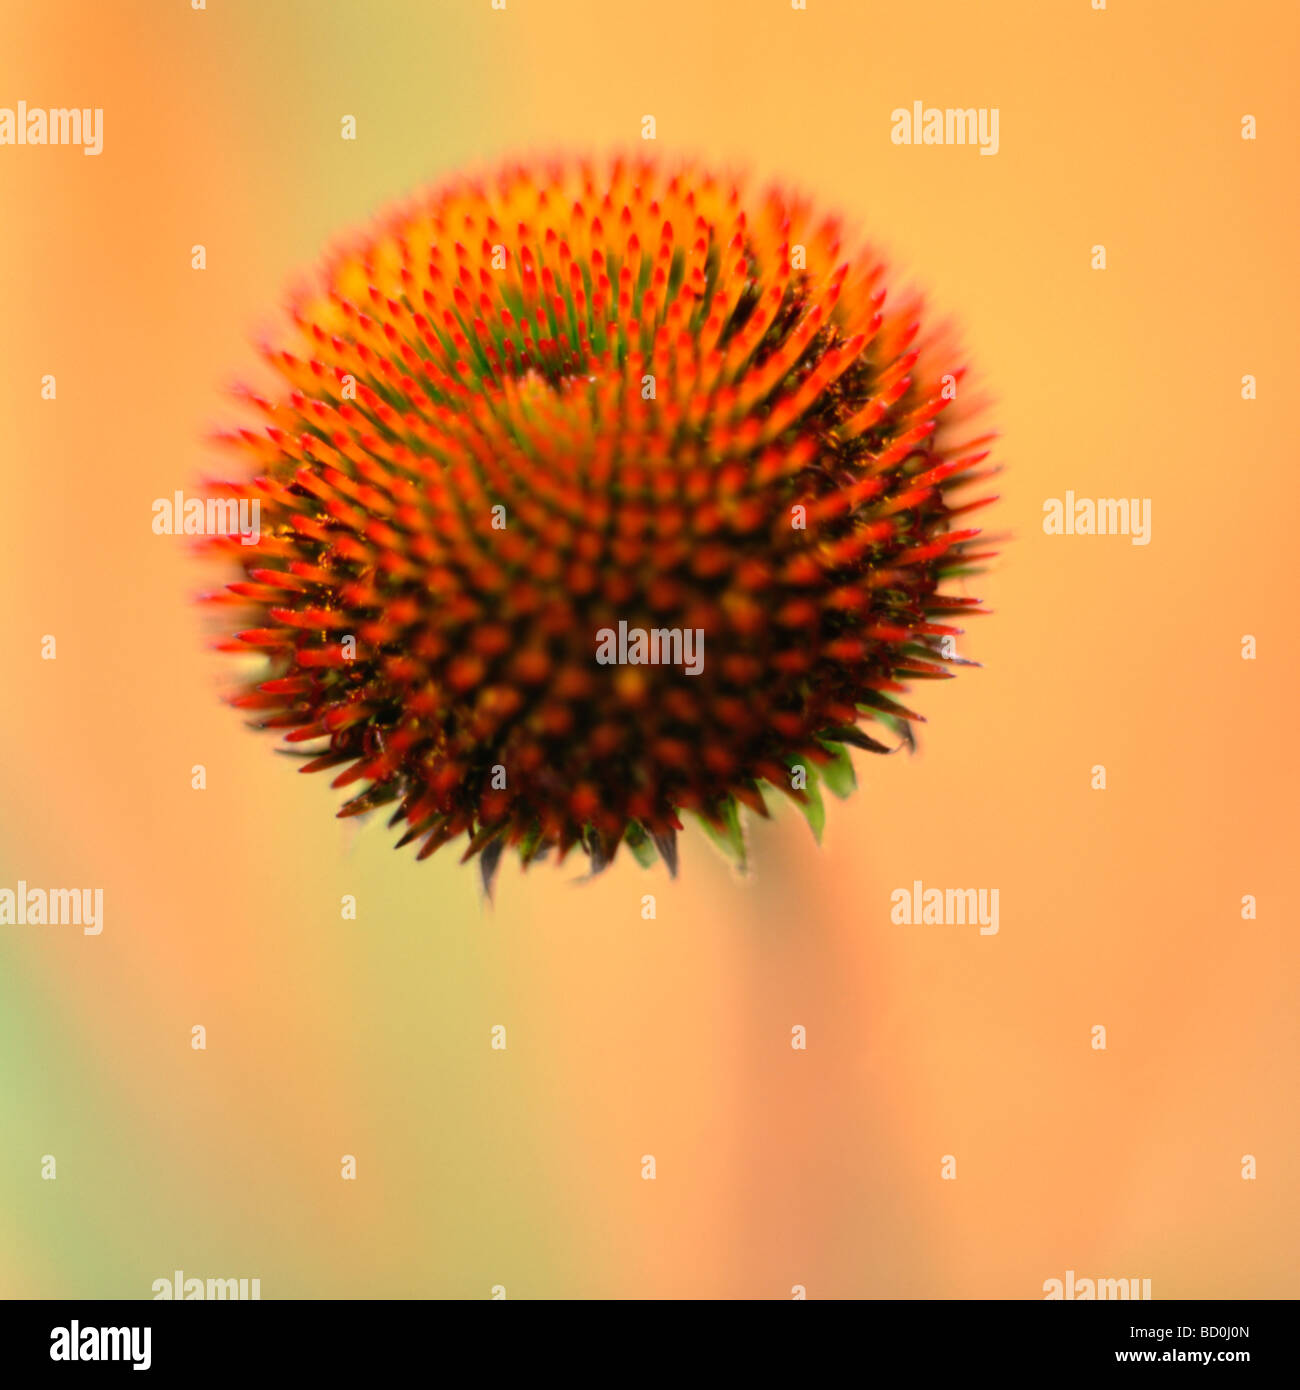 a showy flower found in herbal medicines fine art photography Jane Ann Butler Photography JABP284 - Stock Image